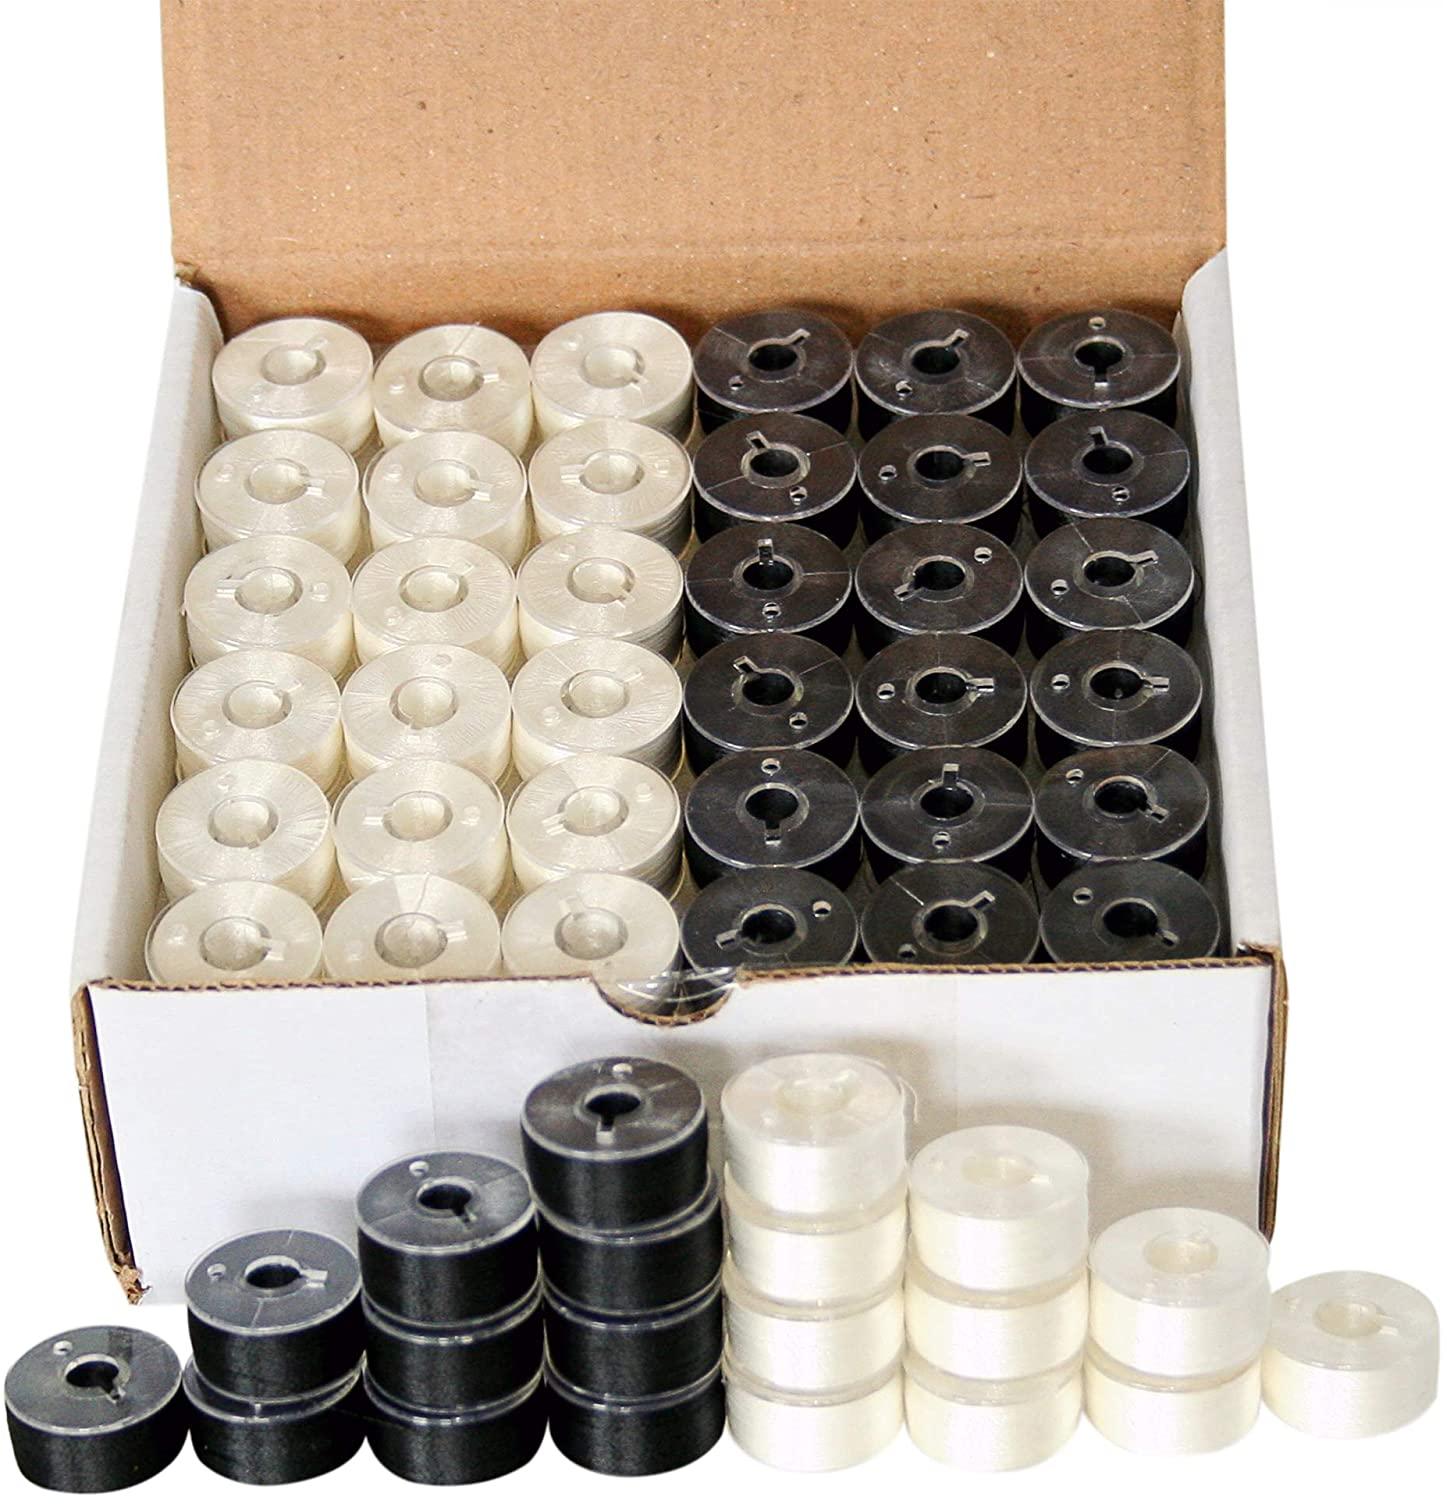 144 Black & White Pre-Wound Bobbins for Brother Embroidery Machines Compatible with PE-700, PE700II, PE-750D, PE-770, PE-780D, Innovis 1000,